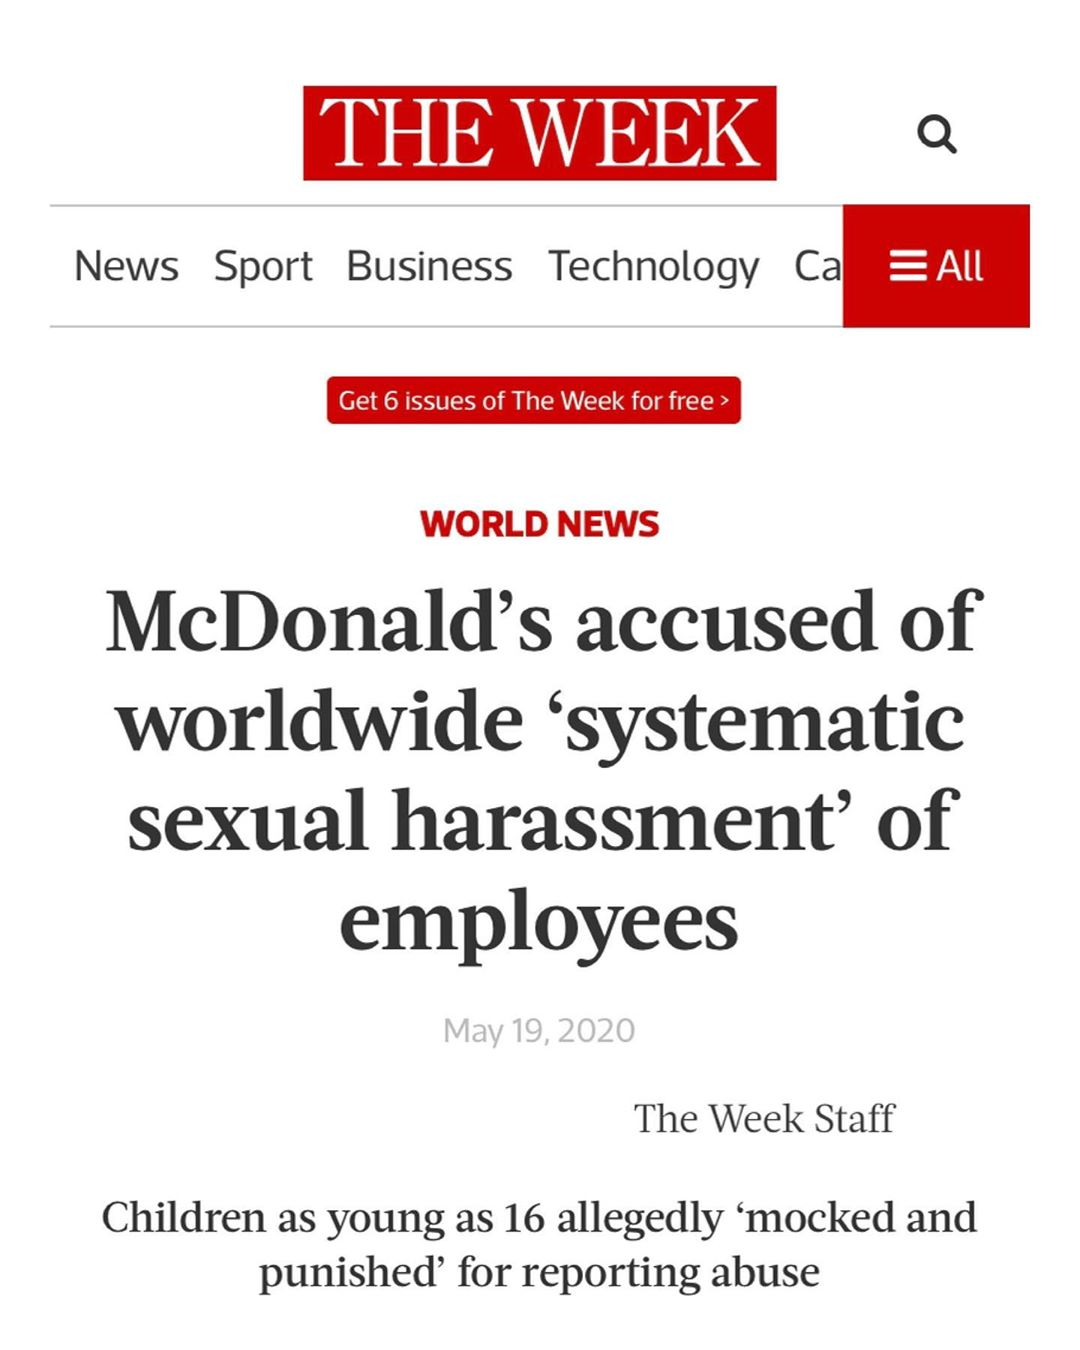 McDonald's accused of worldwide 'systematic sexual harassment' of employees